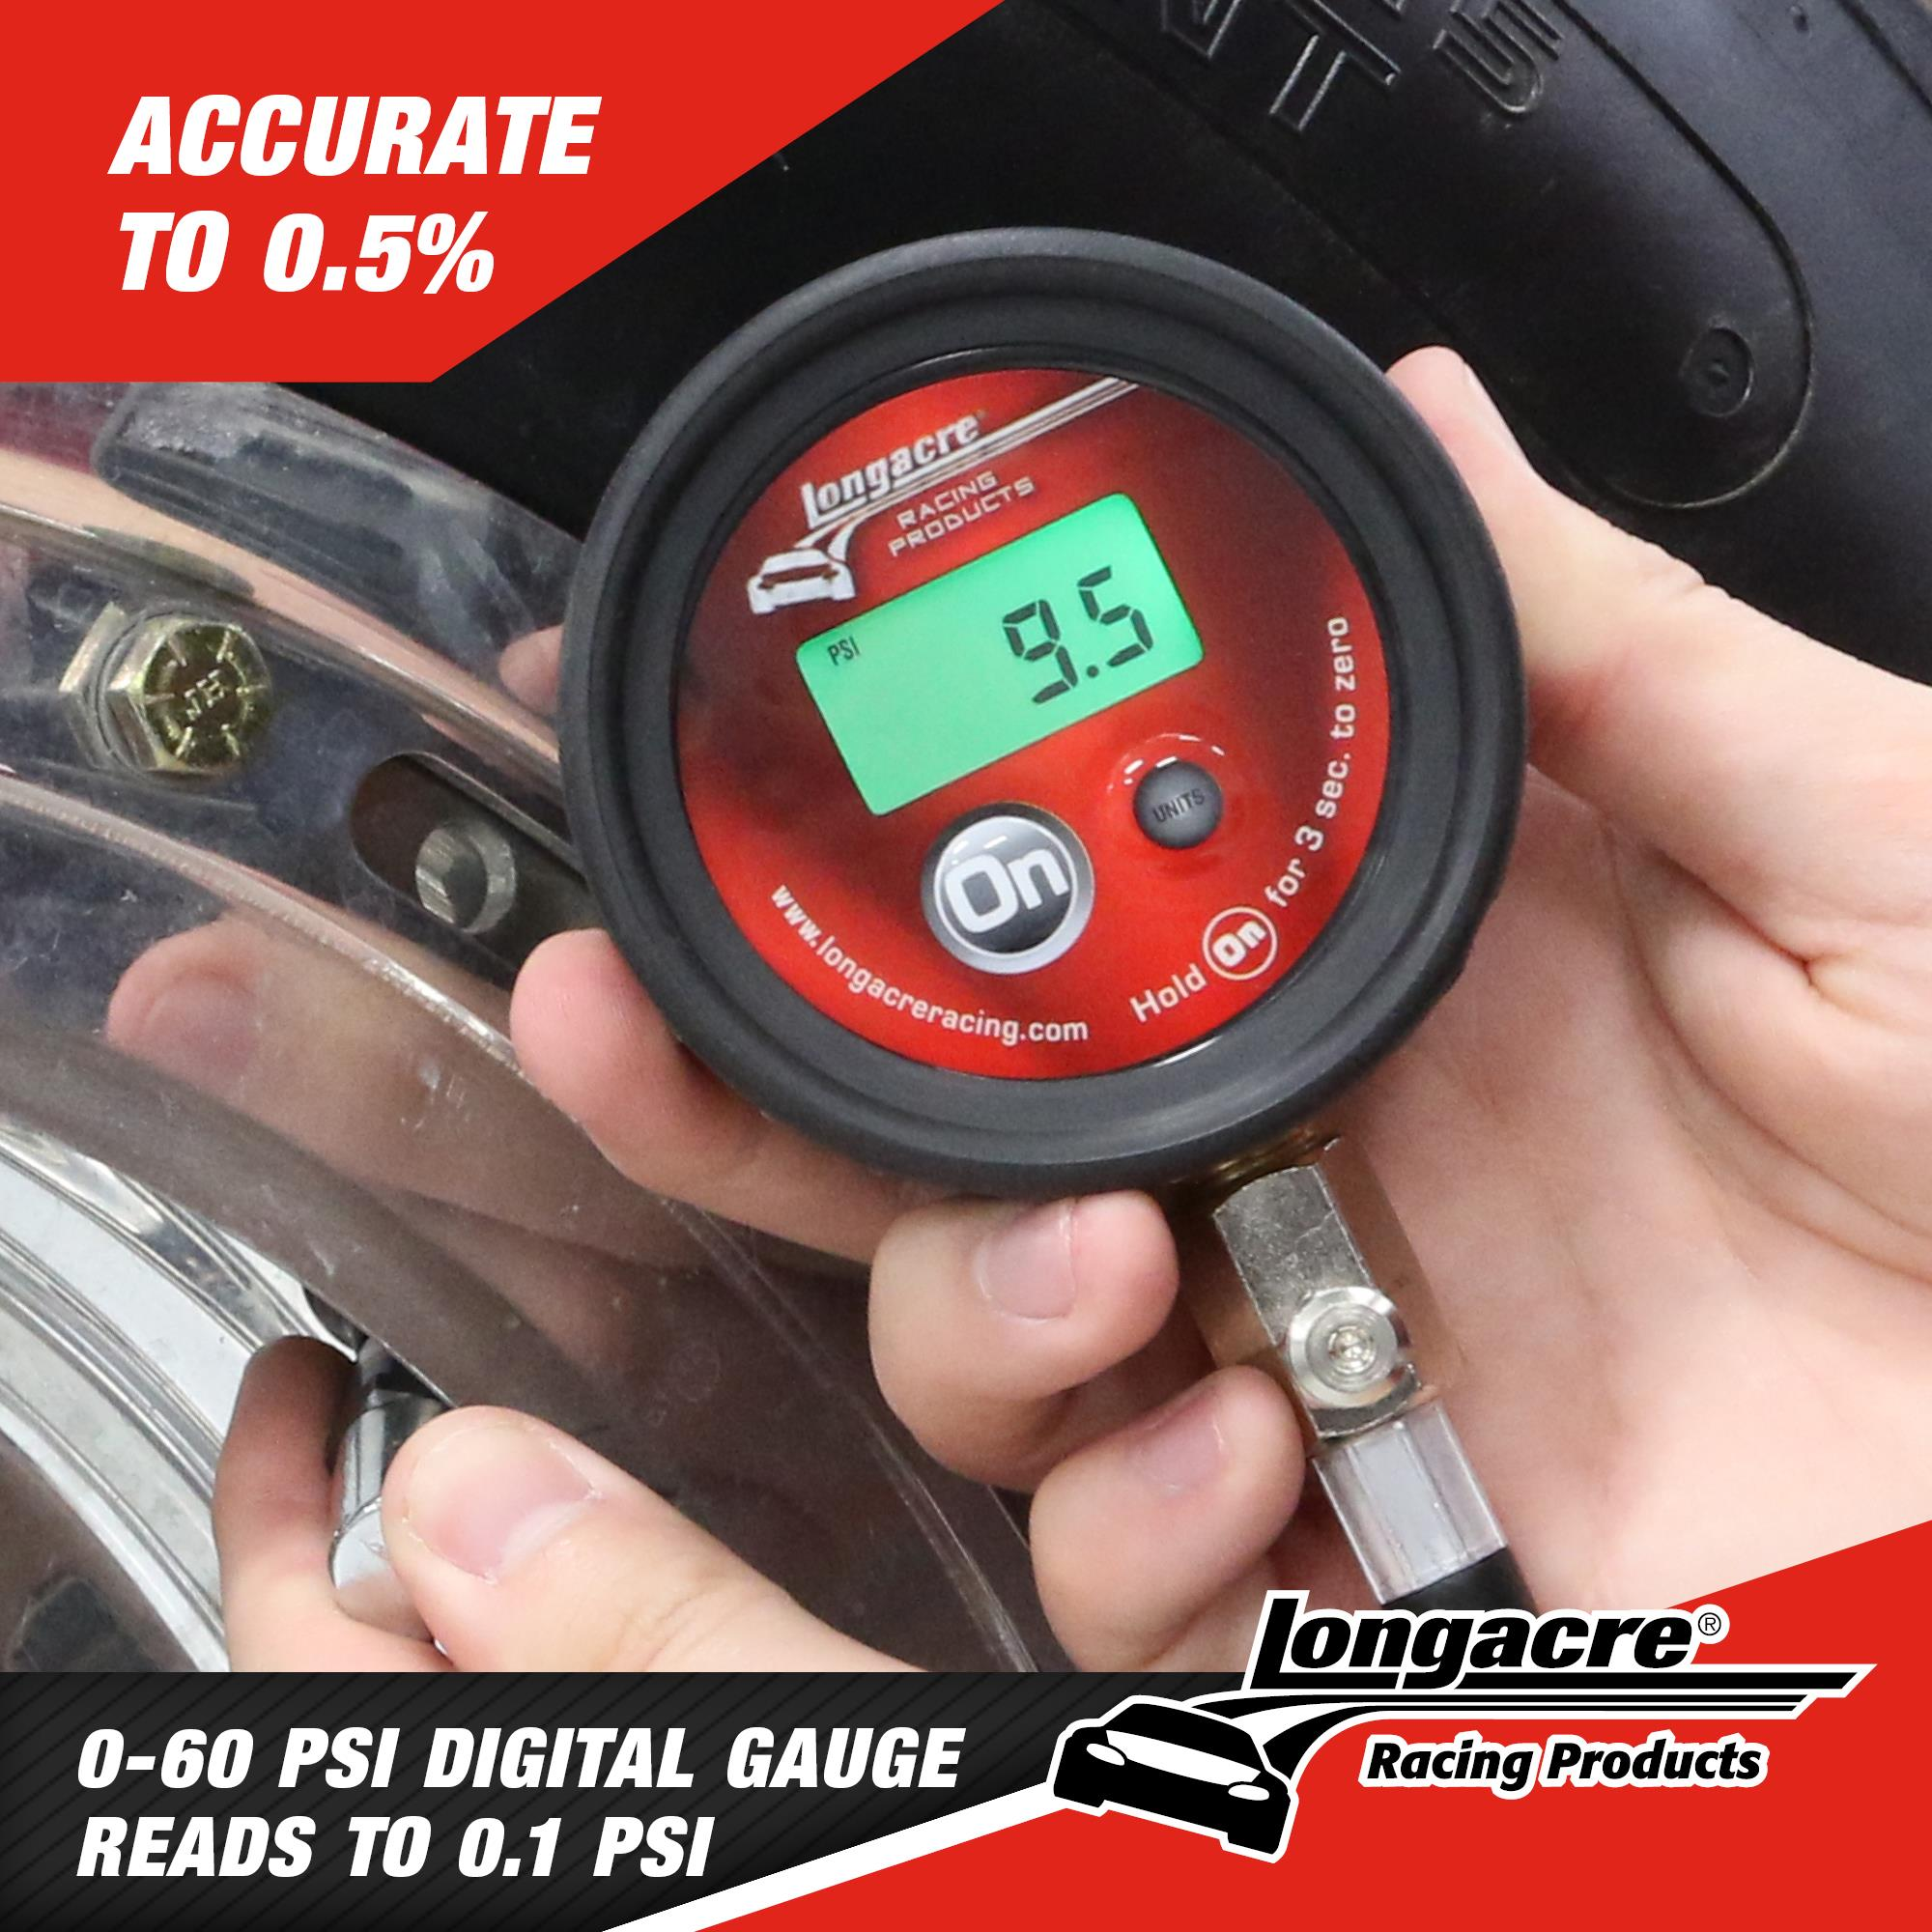 Semi Pro Digital Tire Pressure Gauge 0-60 psi